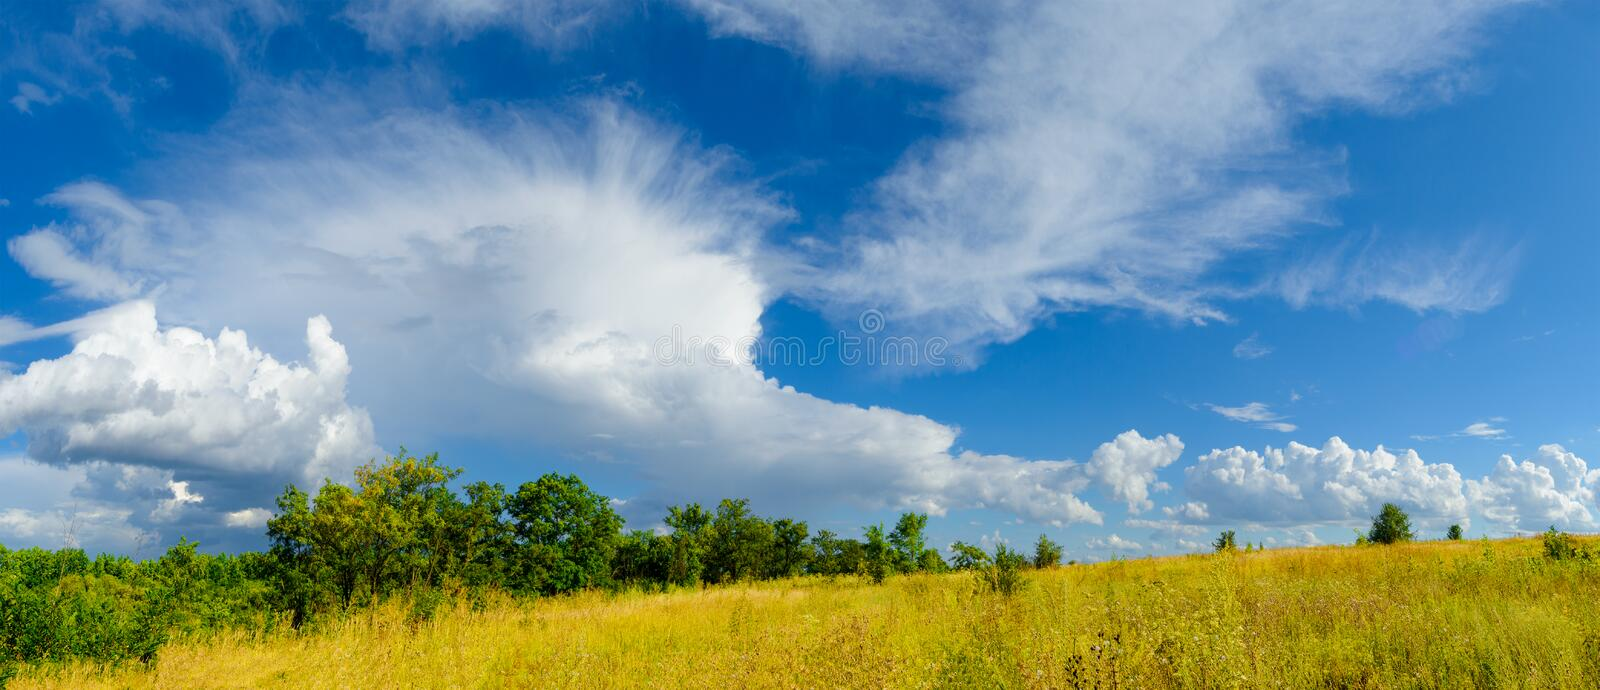 Beautiful Yellow Field and Green Forest under Dramatic Sky stock photography